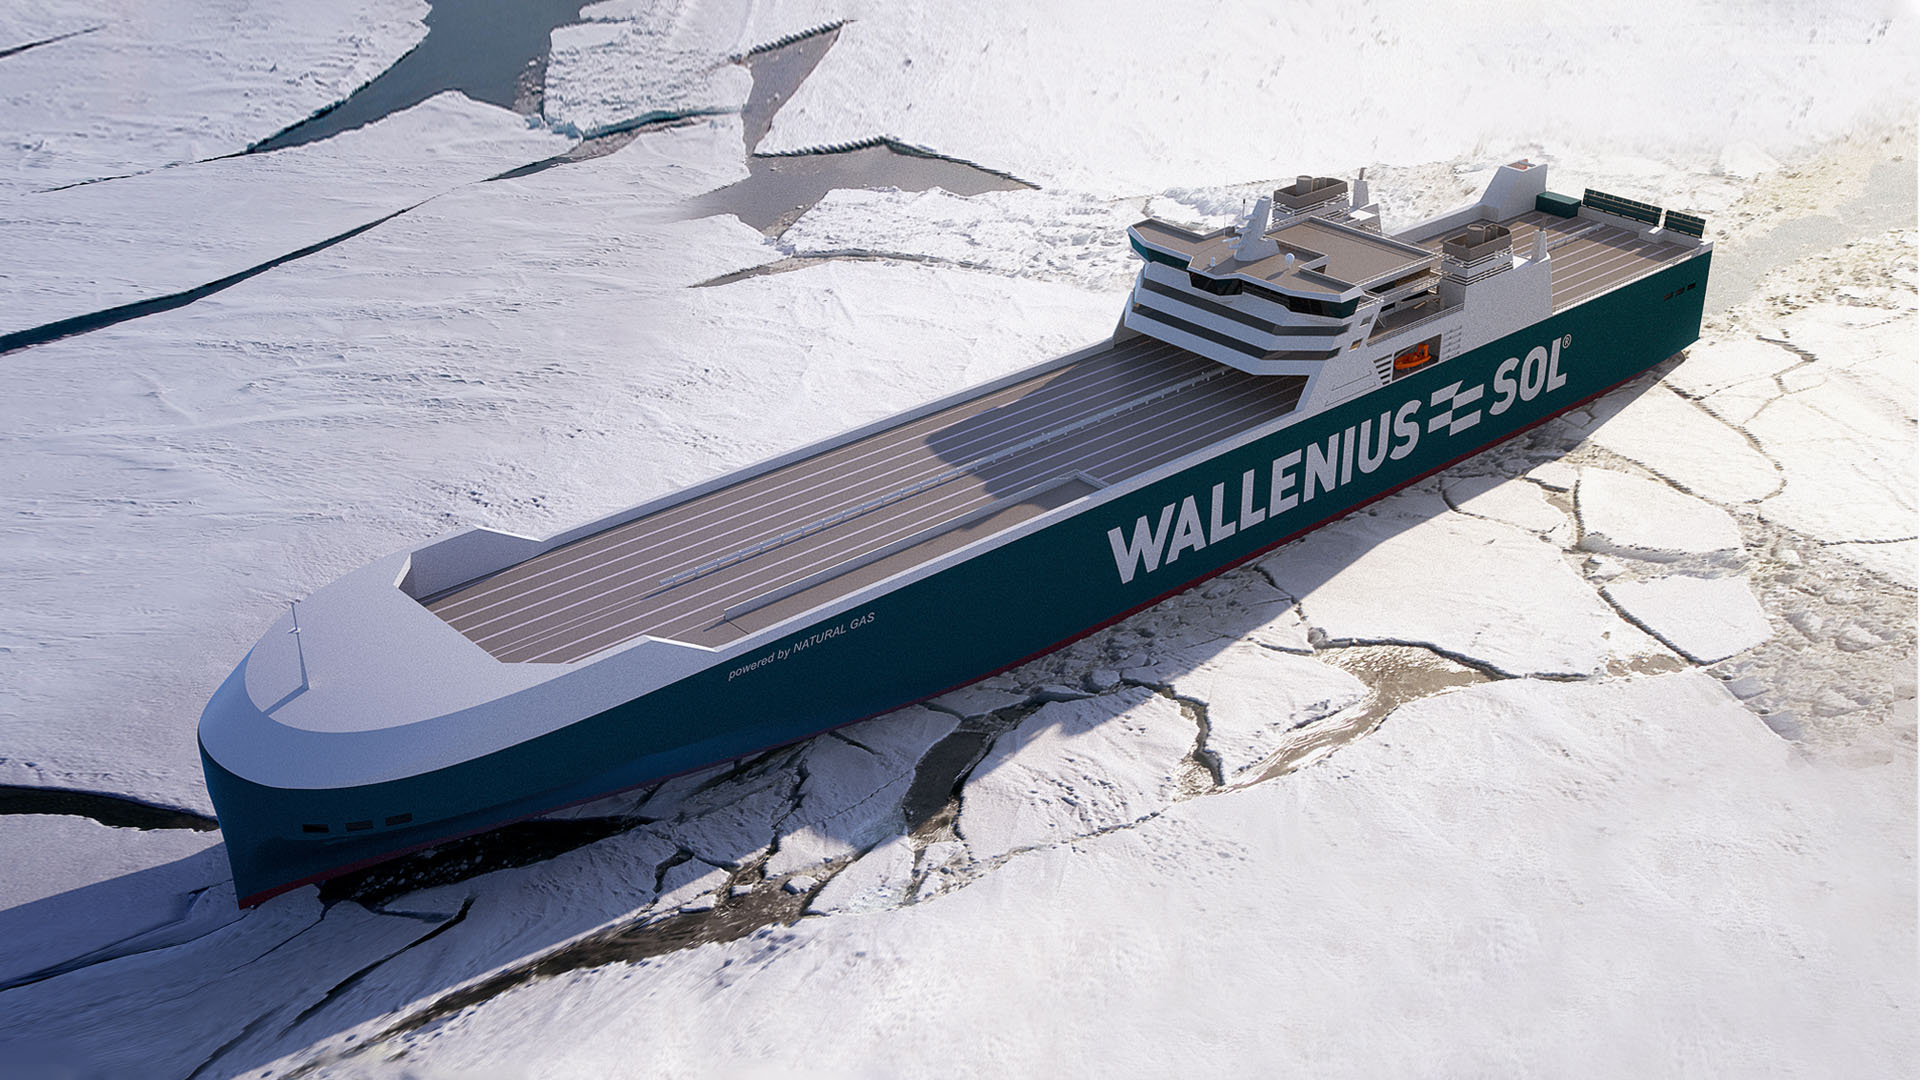 MAN-Cryo to deliver LNG systems for WALLENIUS SOL's newbuilds